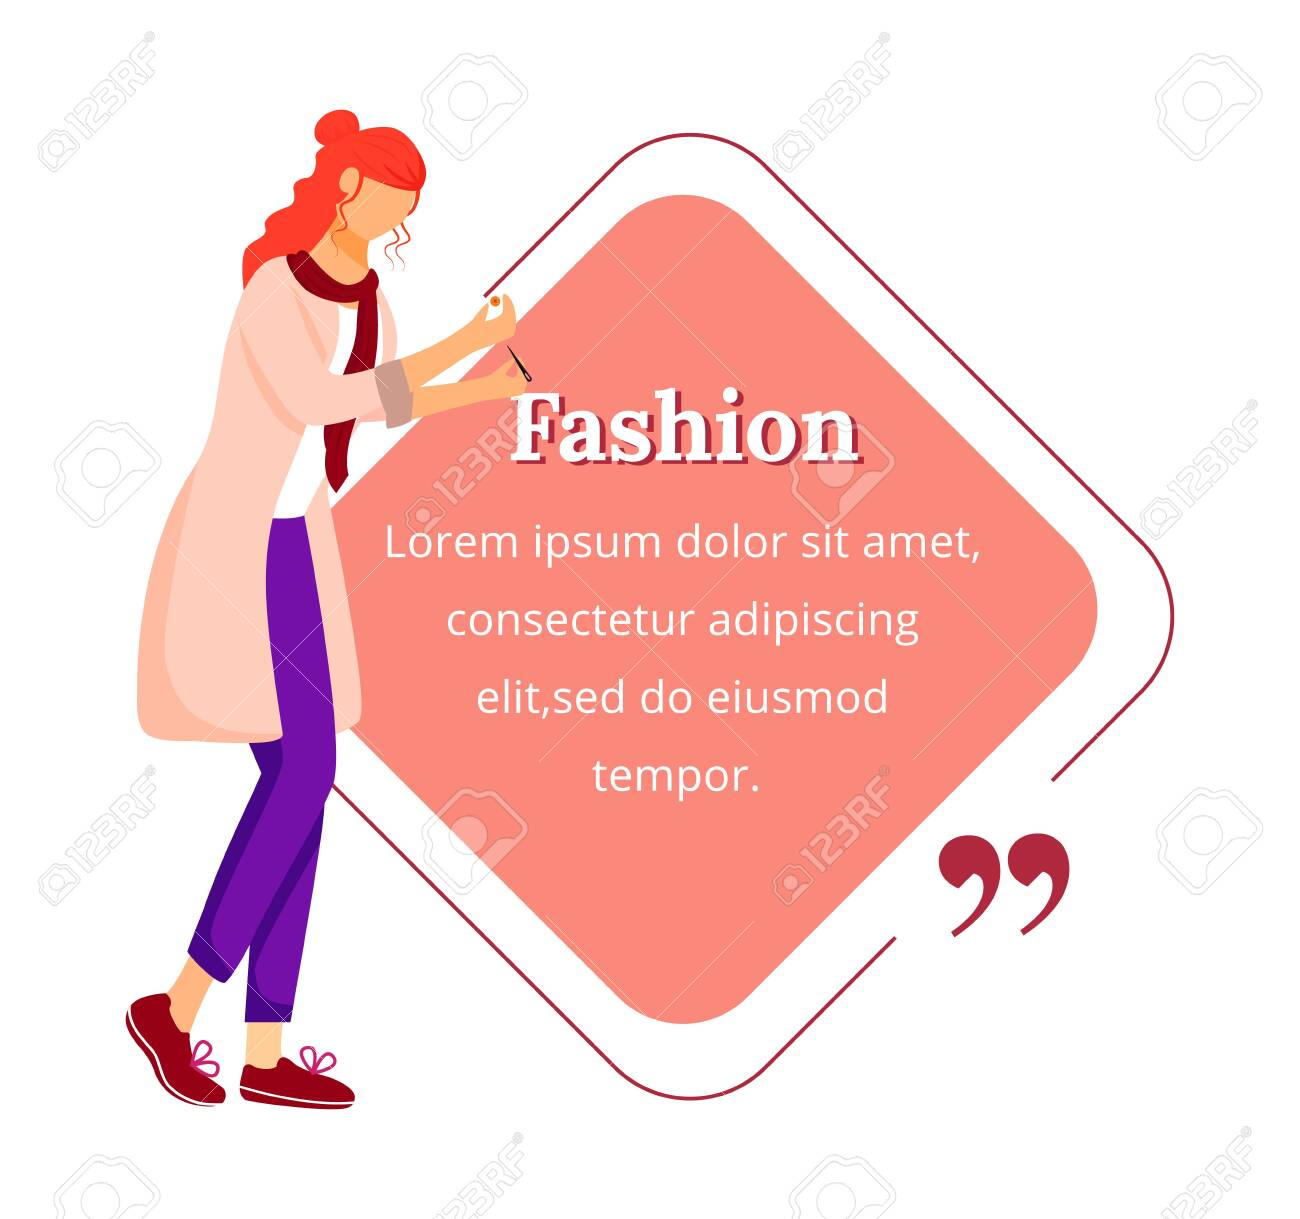 Fashion Designer Flat Color Vector Character Quote Individual Royalty Free Cliparts Vectors And Stock Illustration Image 138833532